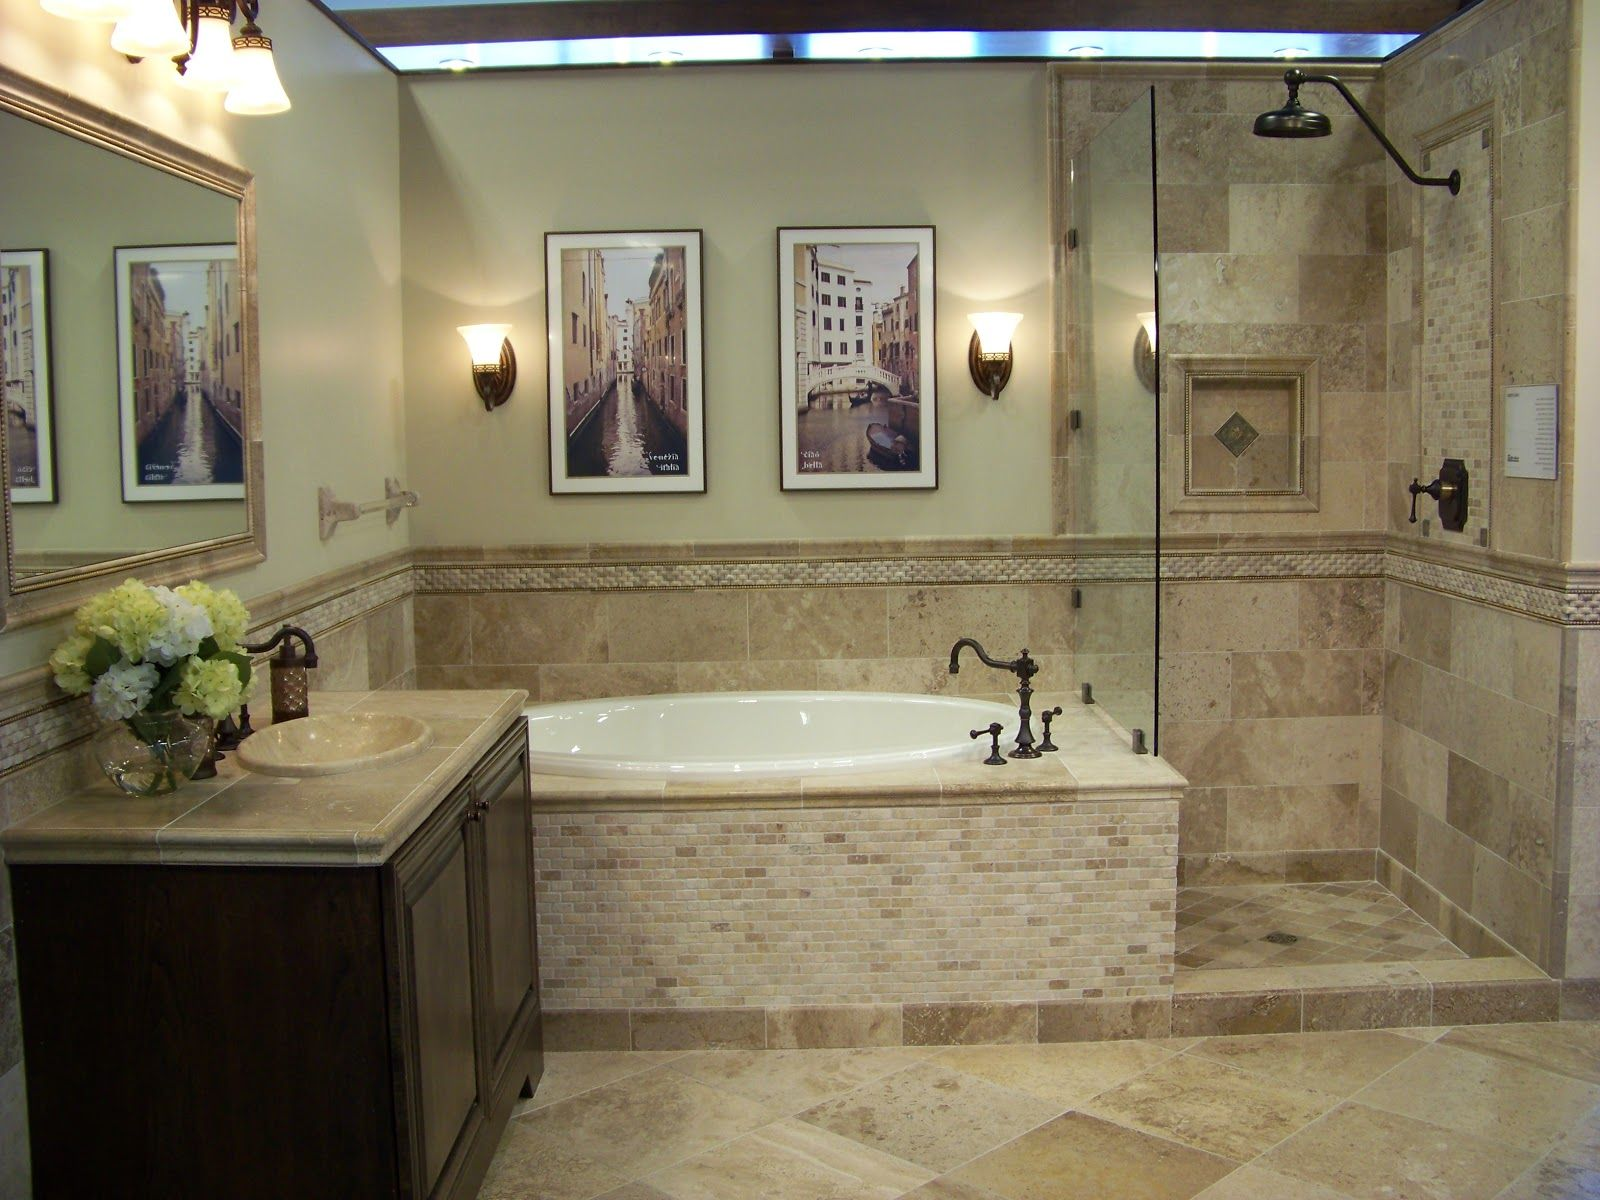 How to Tile a Bathroom Walls as well as Shower/Tub Area ...